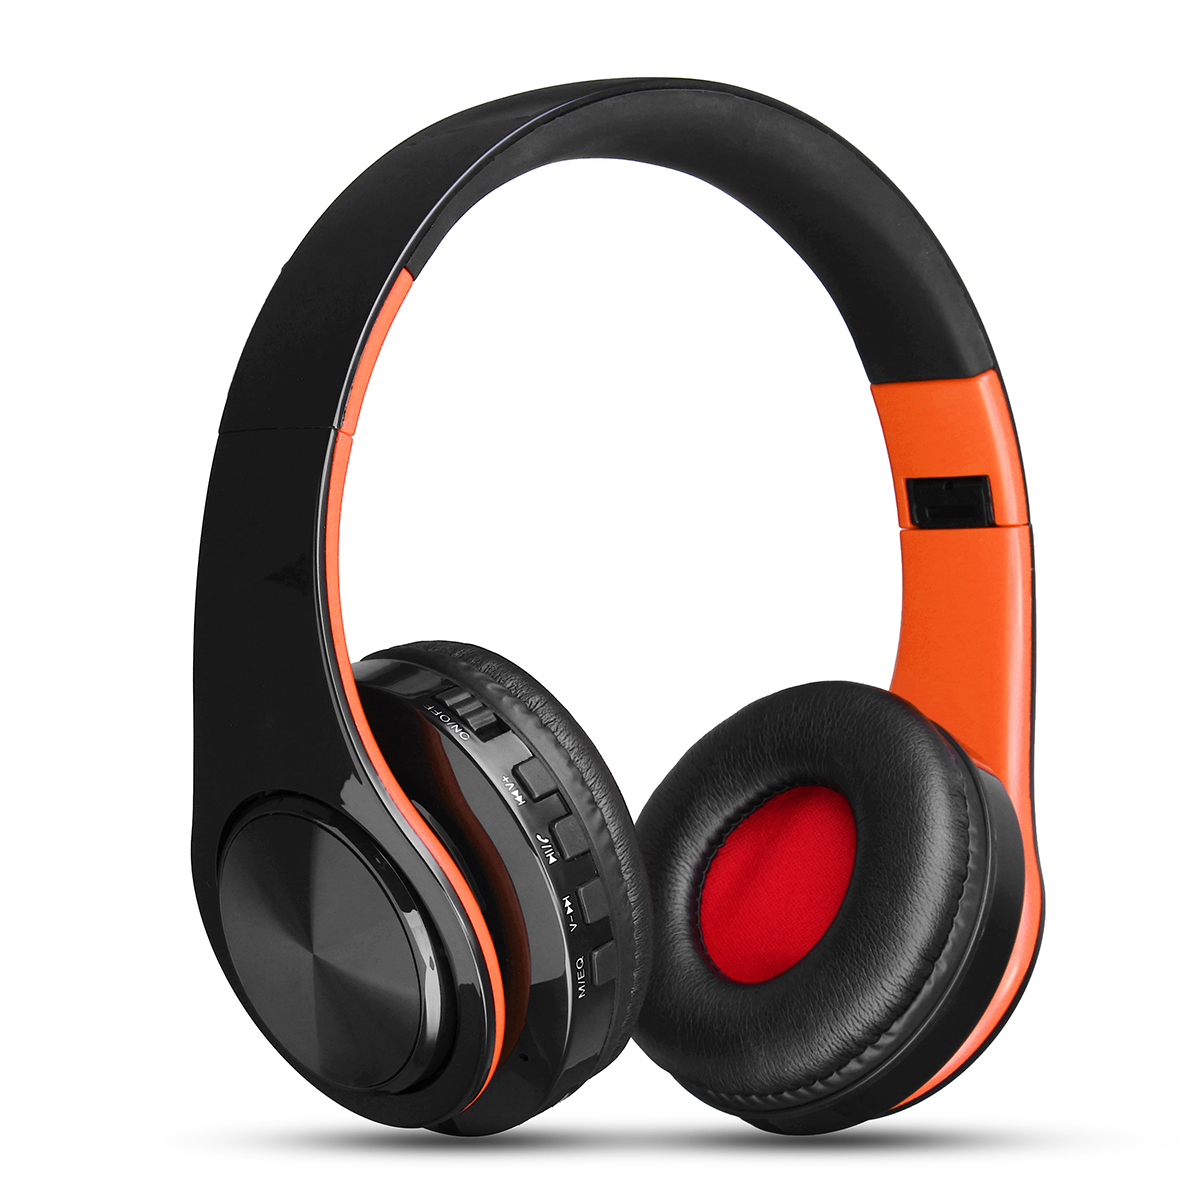 Portable Wireless Hifi Stereo Foldable bluetooth Headphone Sports Handsfree Headset Mic SD AUX